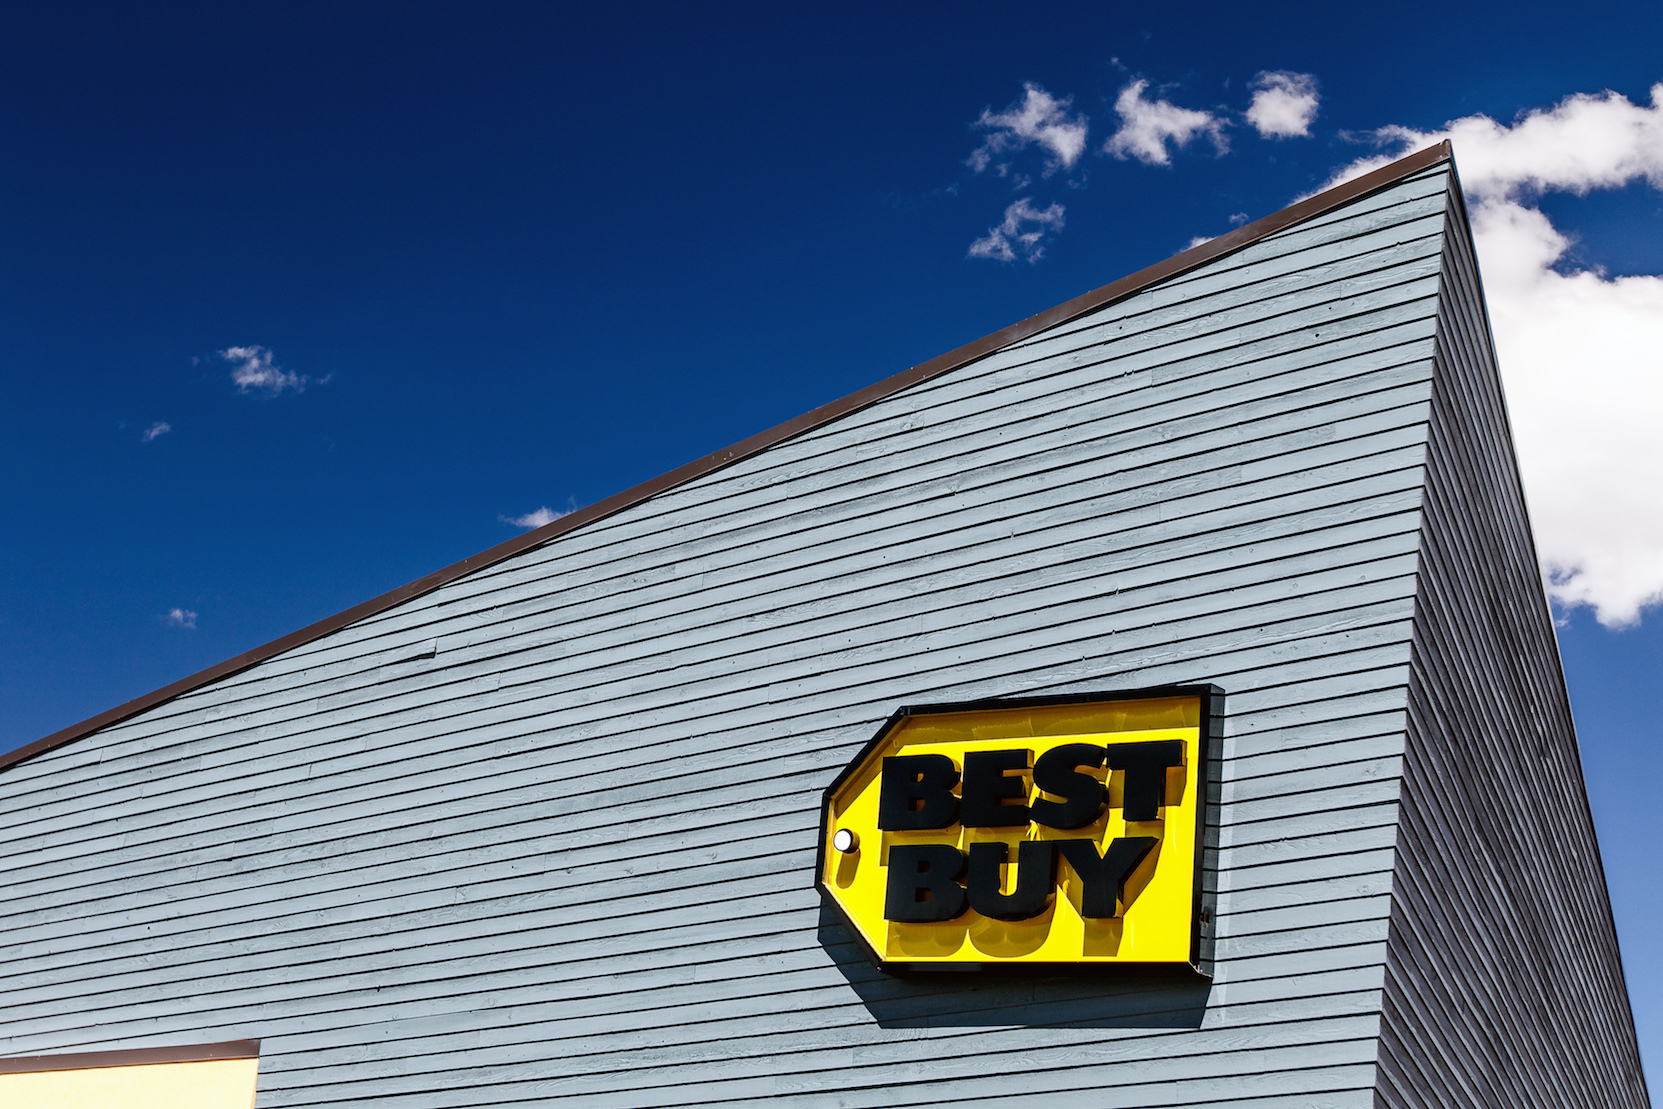 Best Buy has mastered the omnichannel buyer's journey to support their customers